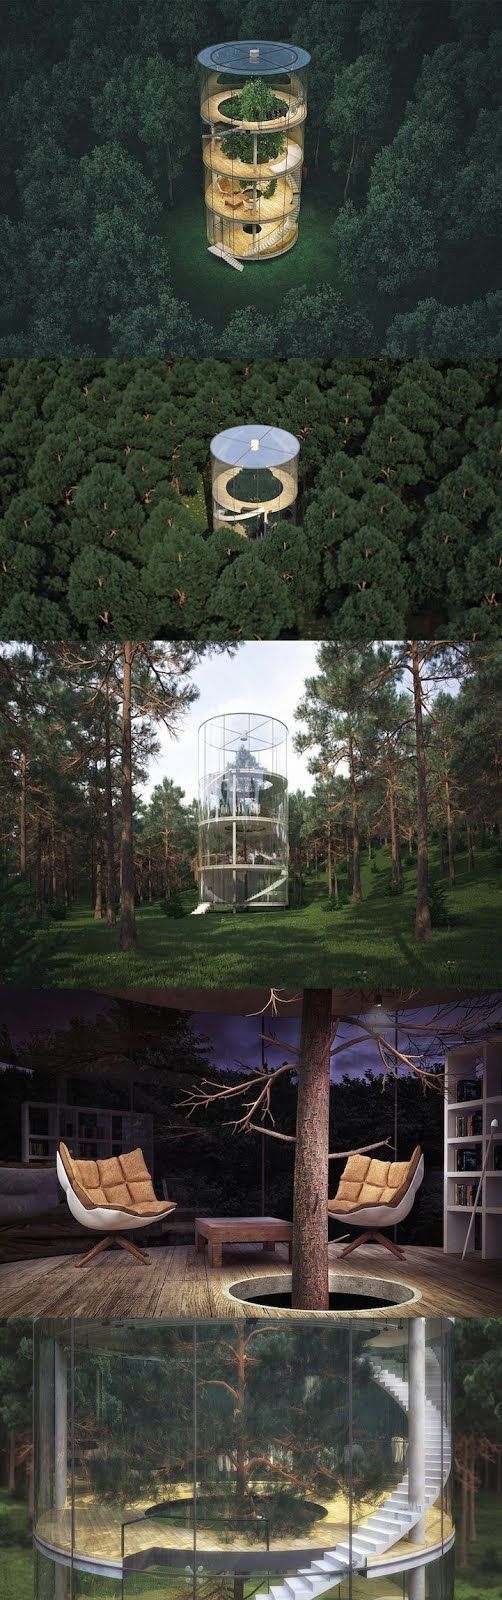 Located in a forest on the mountains of Almaty in Kazakhstan, architect Aibek Almasov of A.Masow Design Studio has designed a concept for a modern spiritua